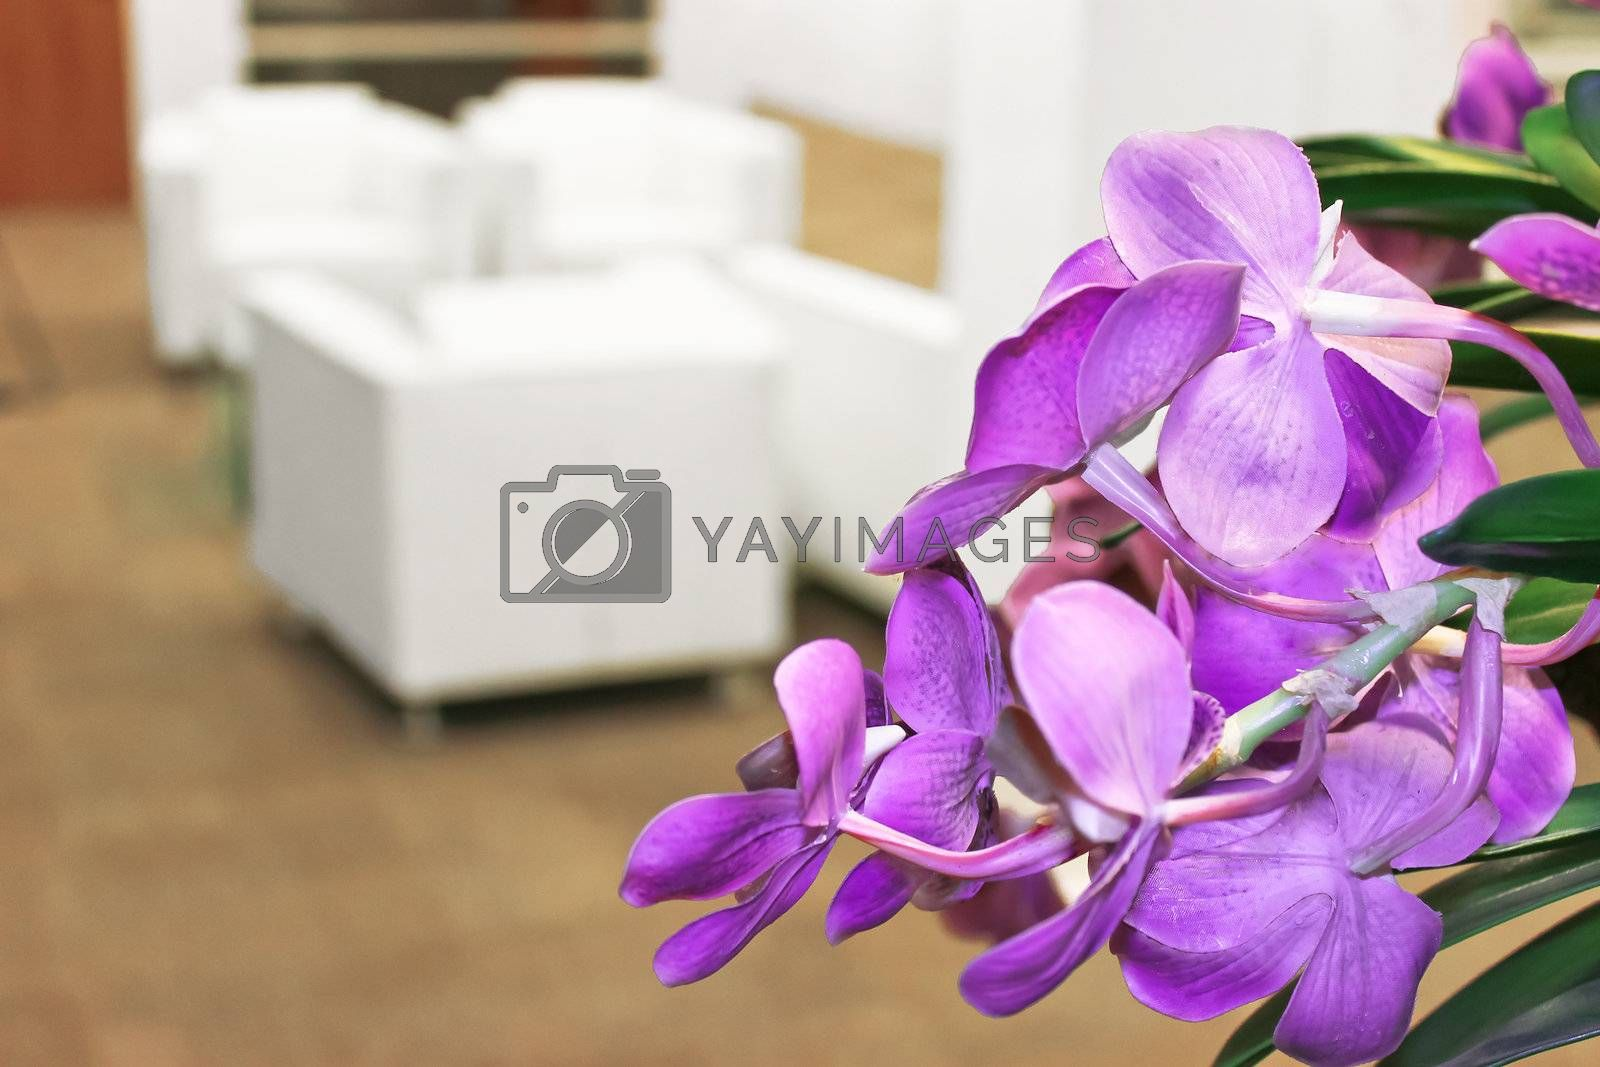 Flowers in the office interior